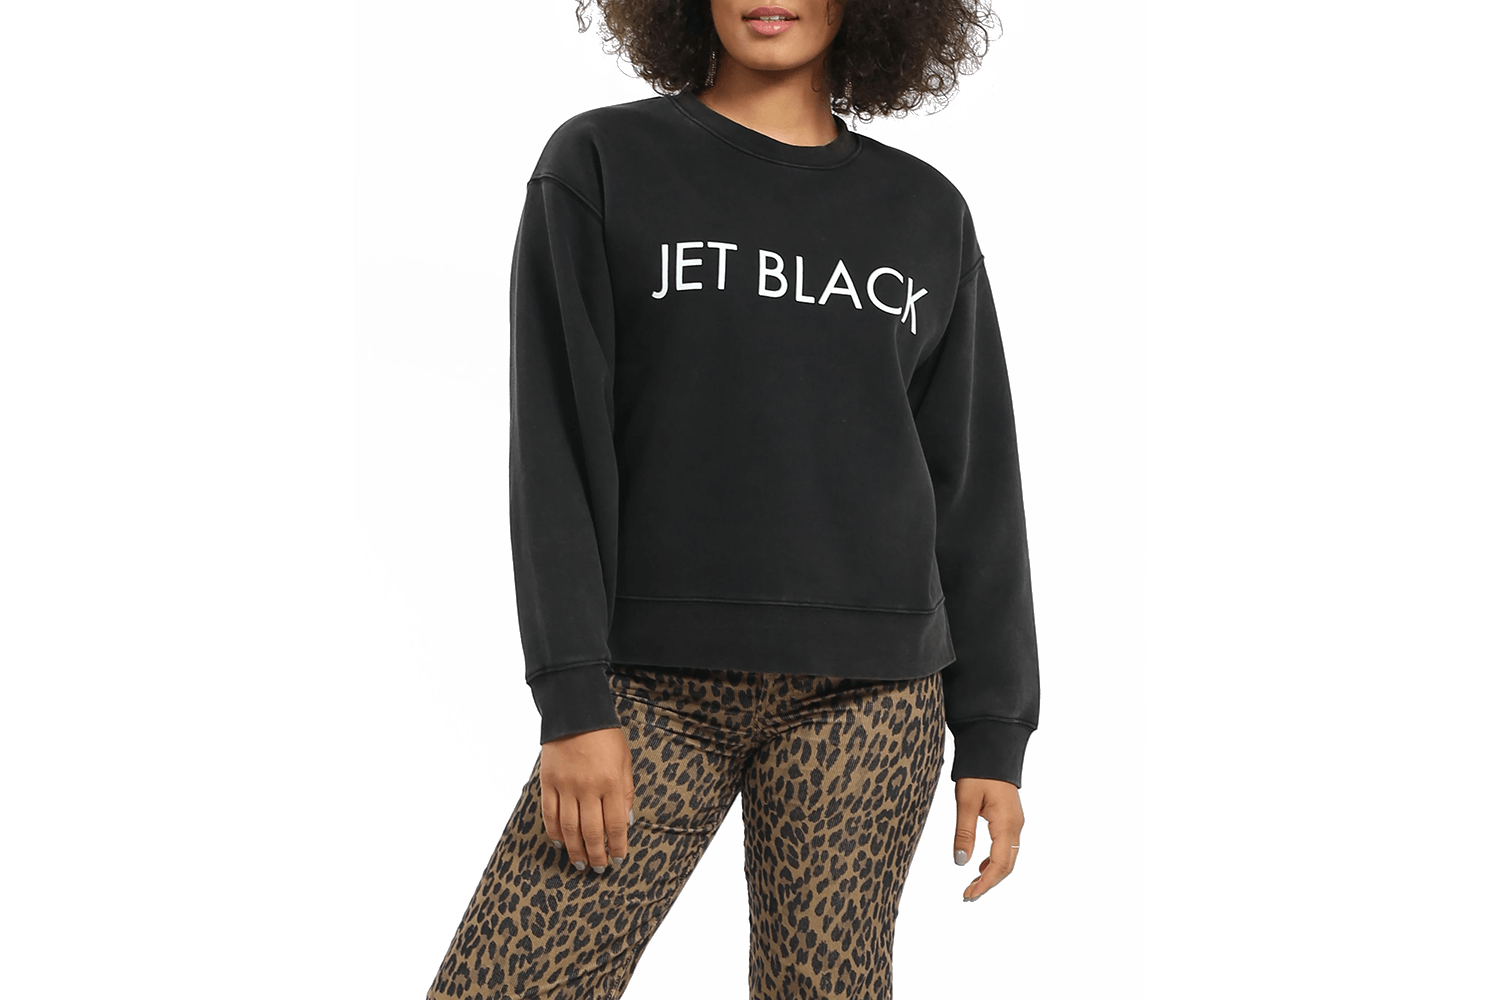 JET BLACK STEP SISTER CREW-BTL155 WOMENS SOFTGOODS BRUNETTE THE LABEL